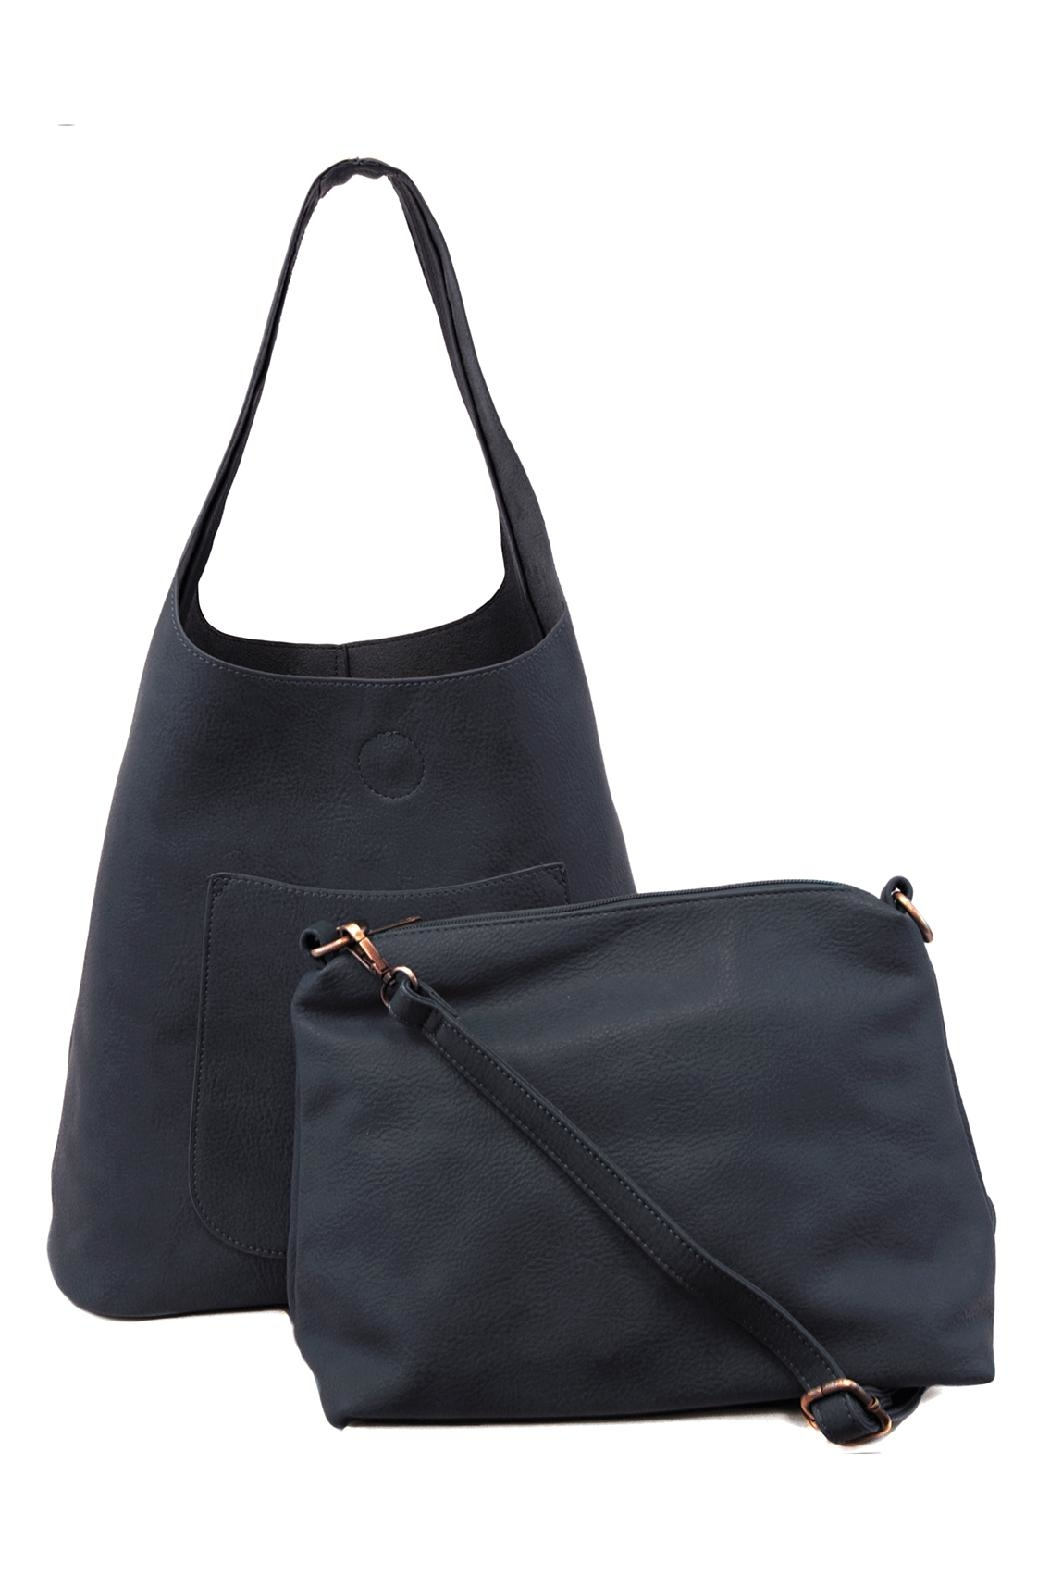 Joy Susan Accessories Molly Slouchy Hobo - Front Full Image